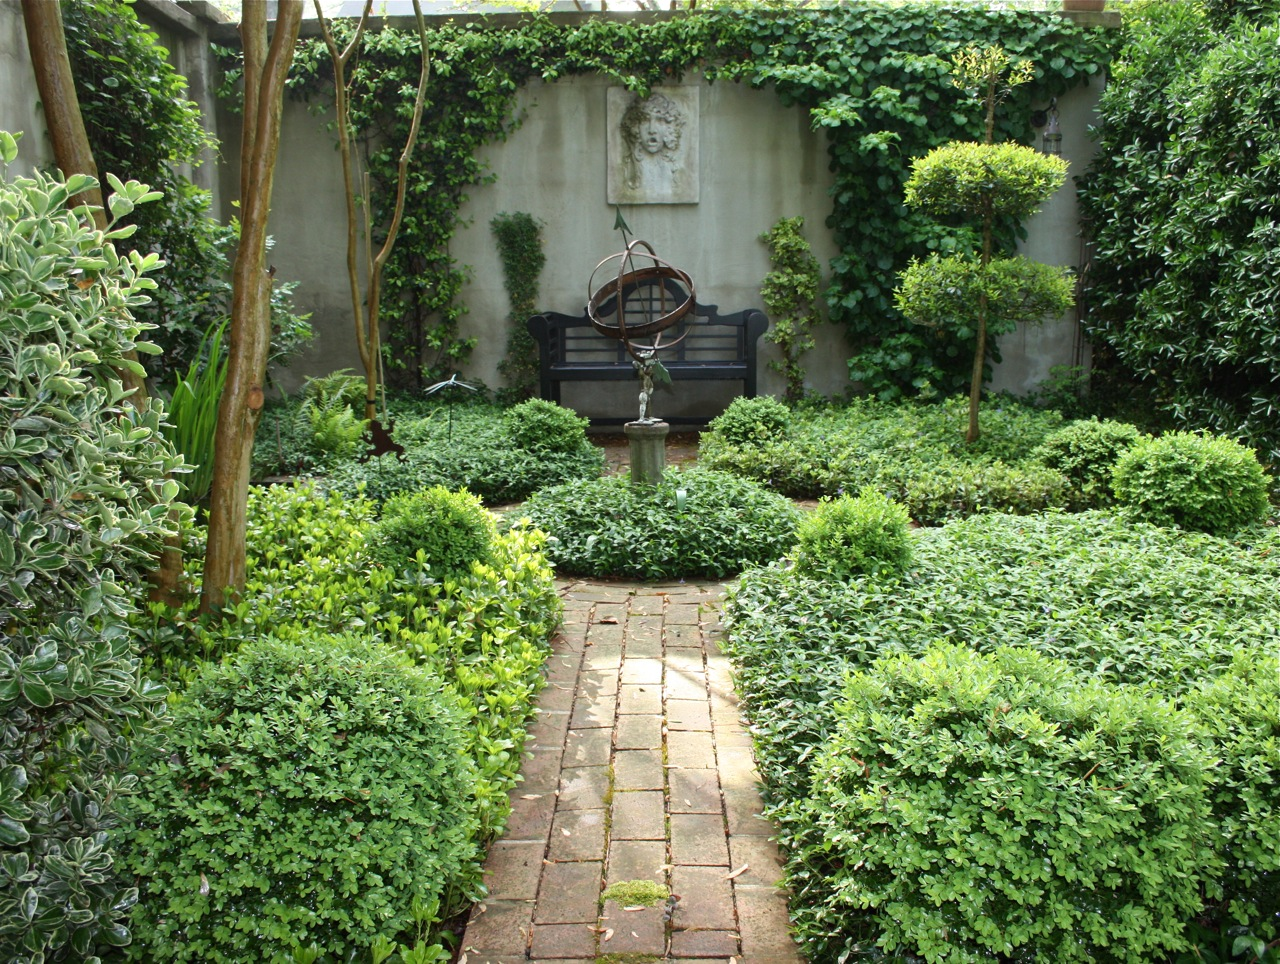 A curious gardener southern courtyard gardens for Tiny garden design